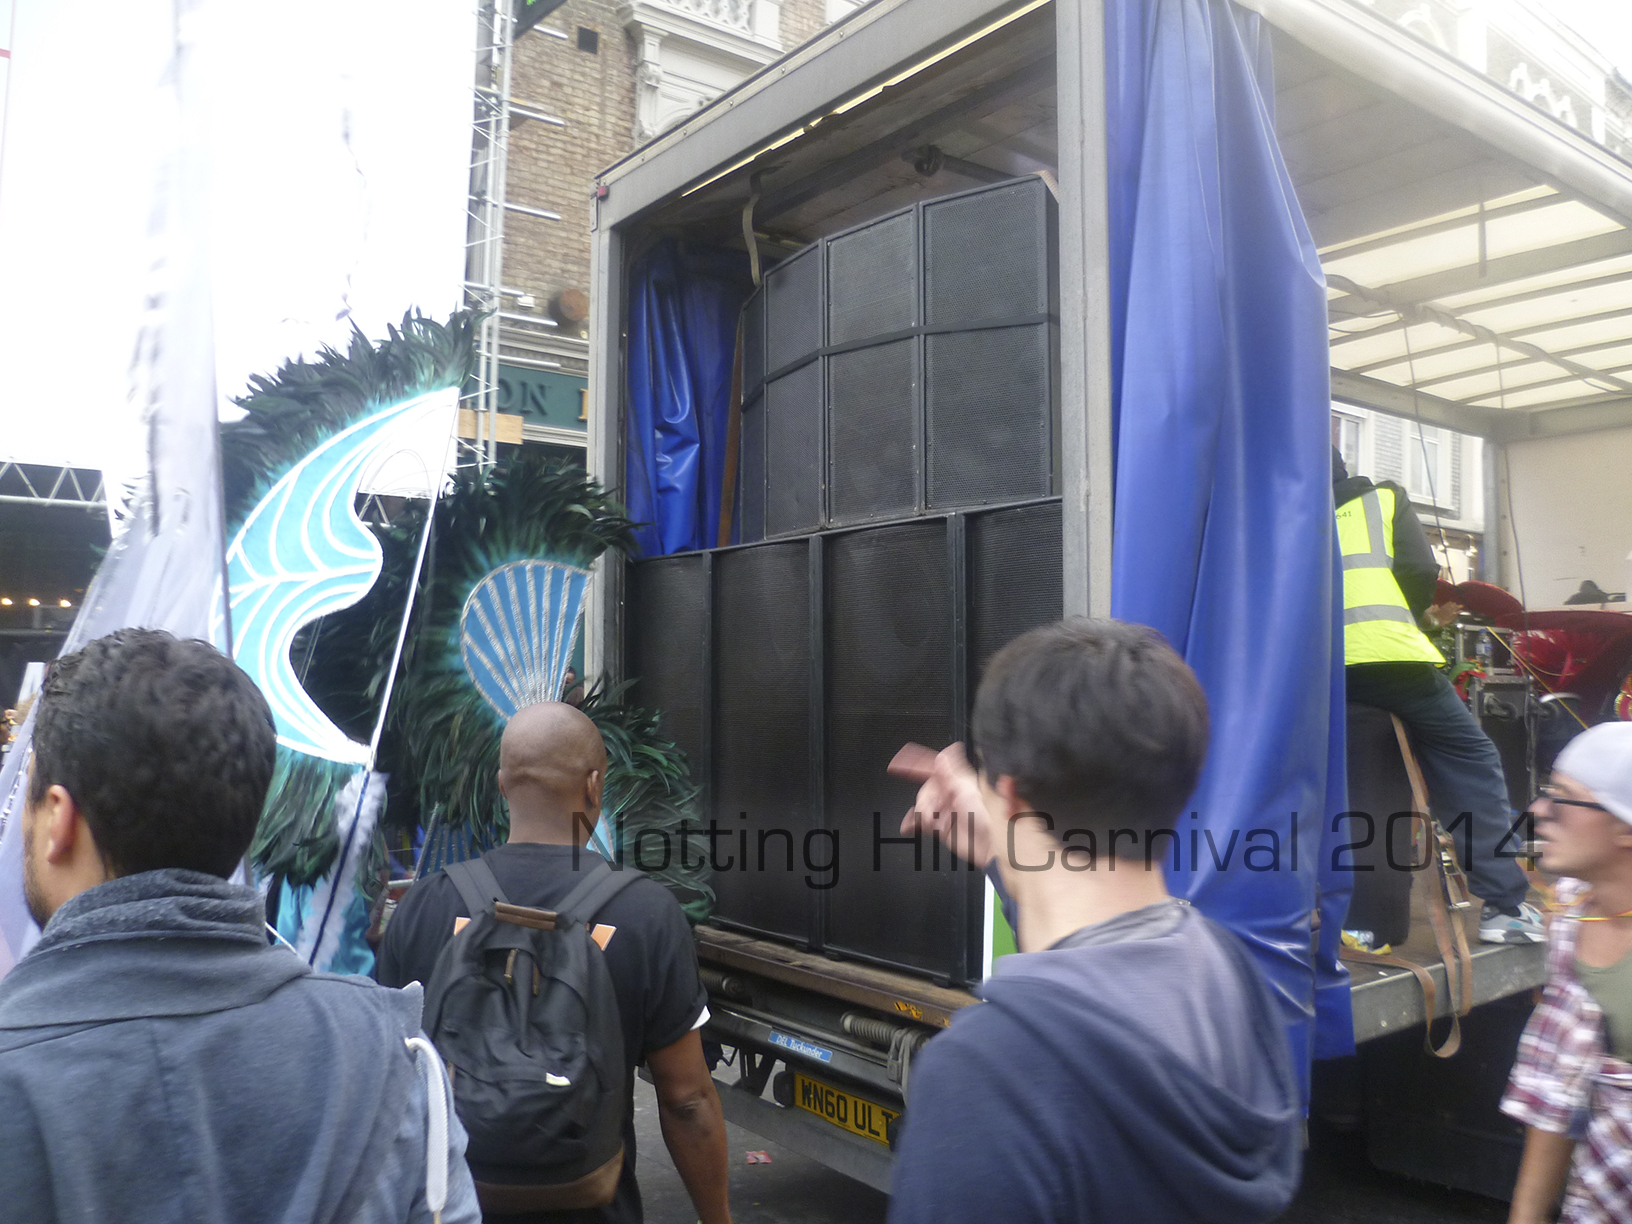 Notting-Hill-Carnival-2014-Float-Sound-System-3